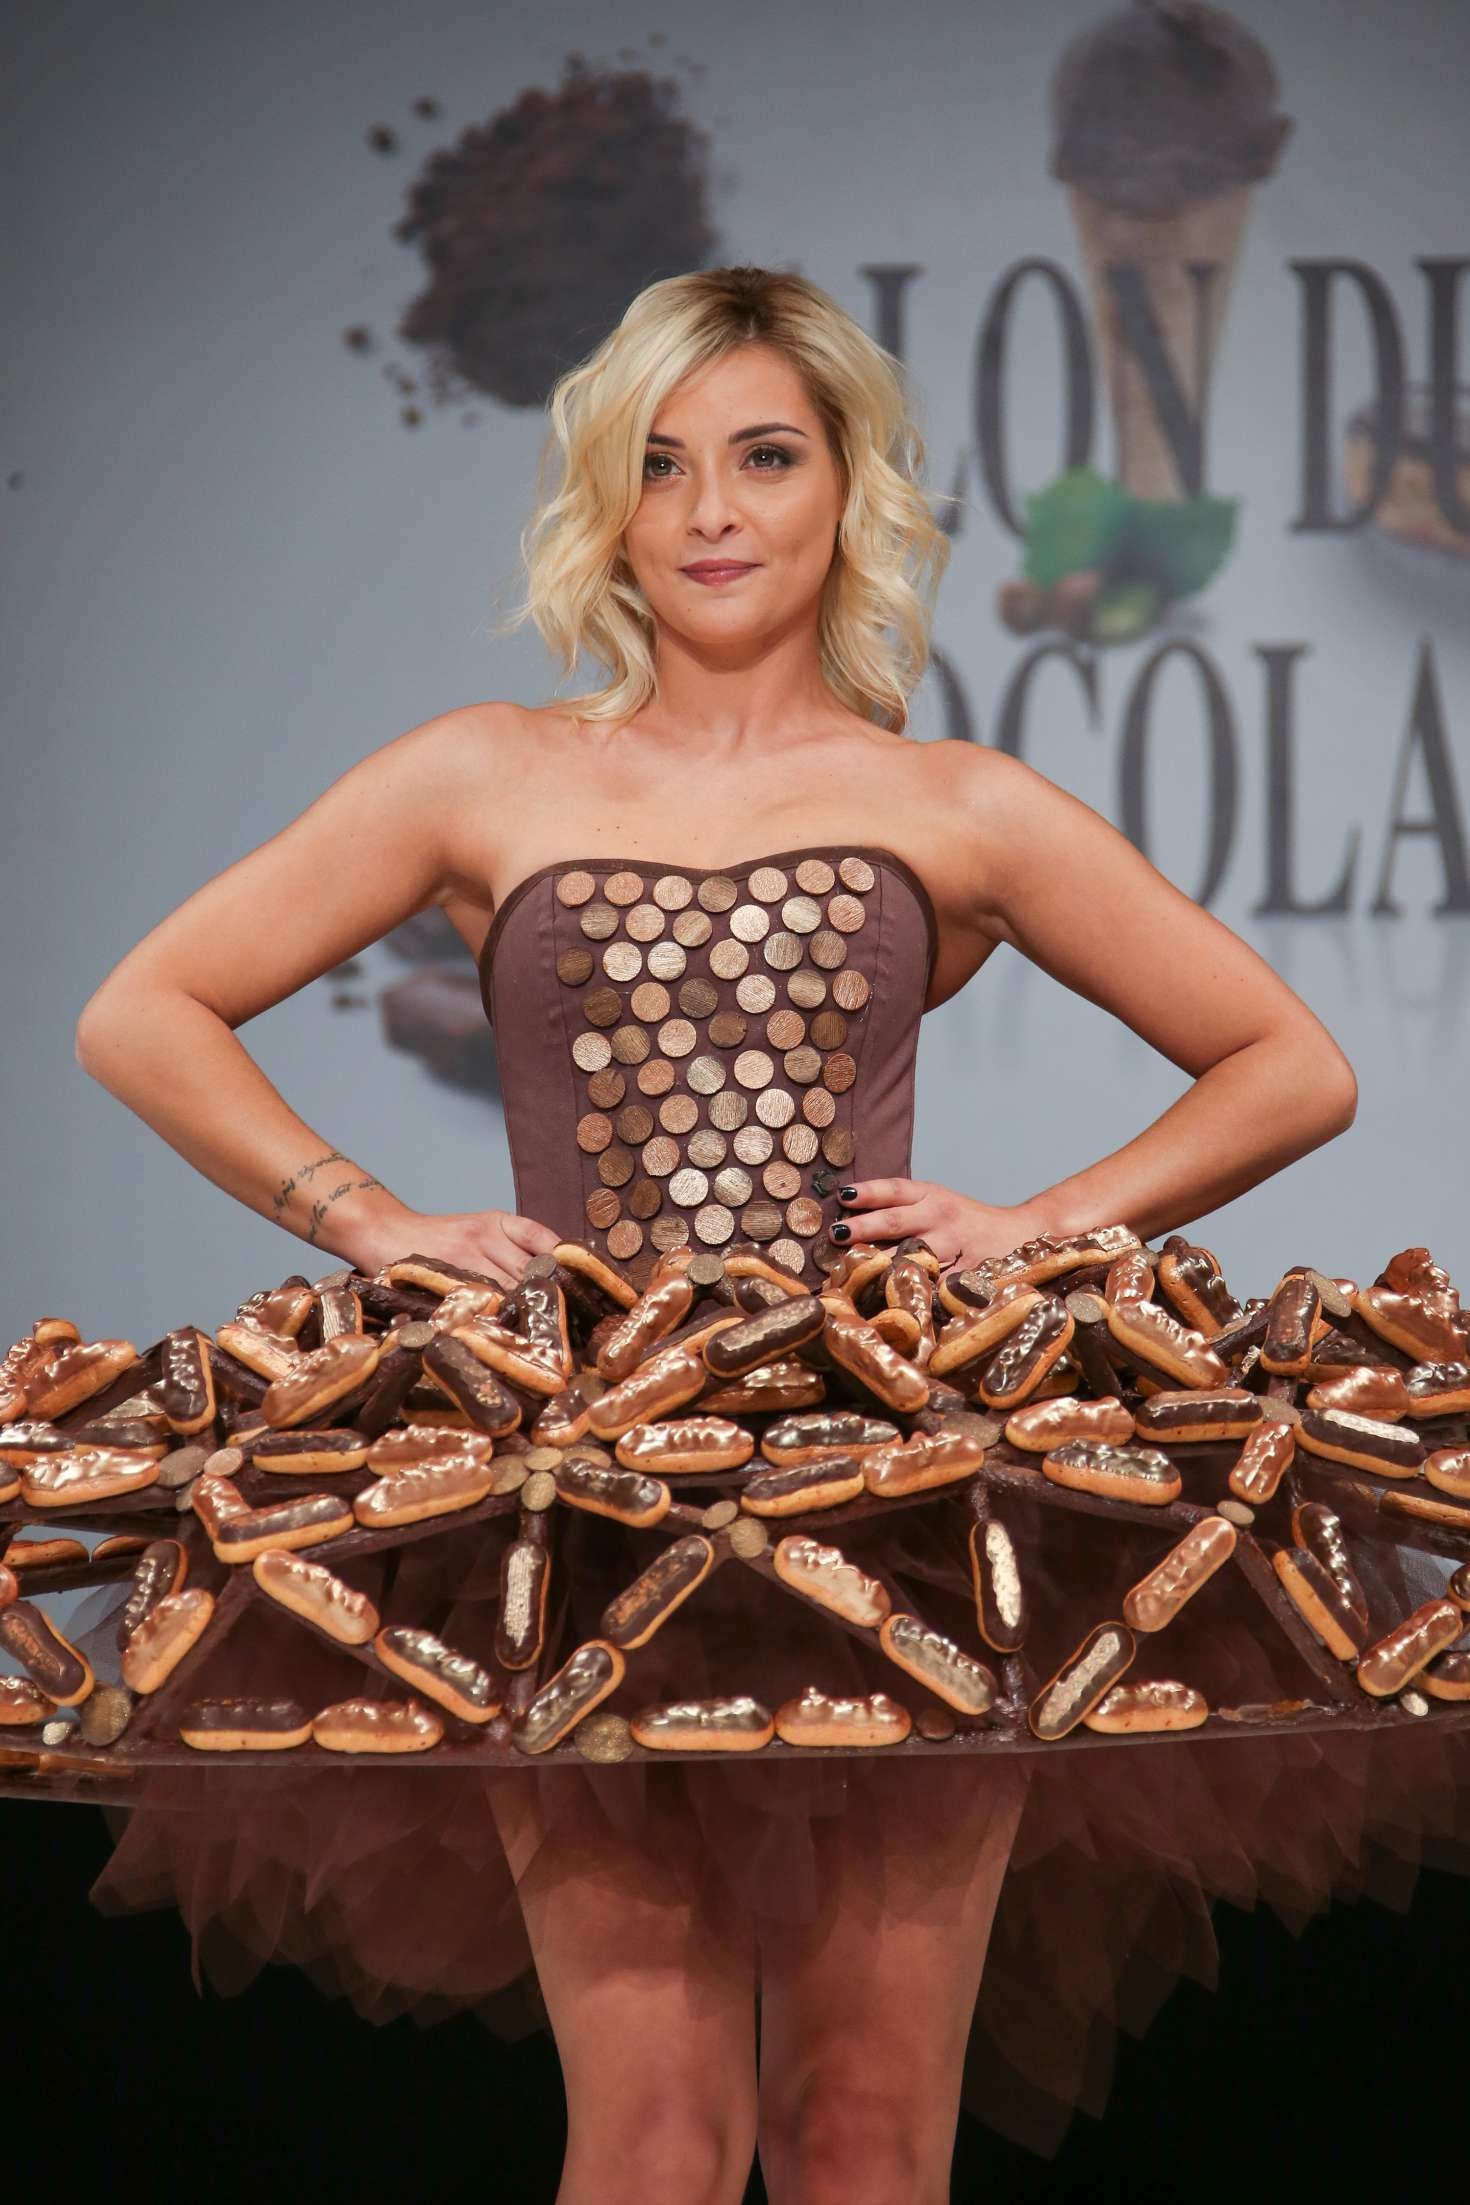 Priscilla Betti - 'Salon Du Chocolat Paris 2017' - Chocolate Fair in Paris